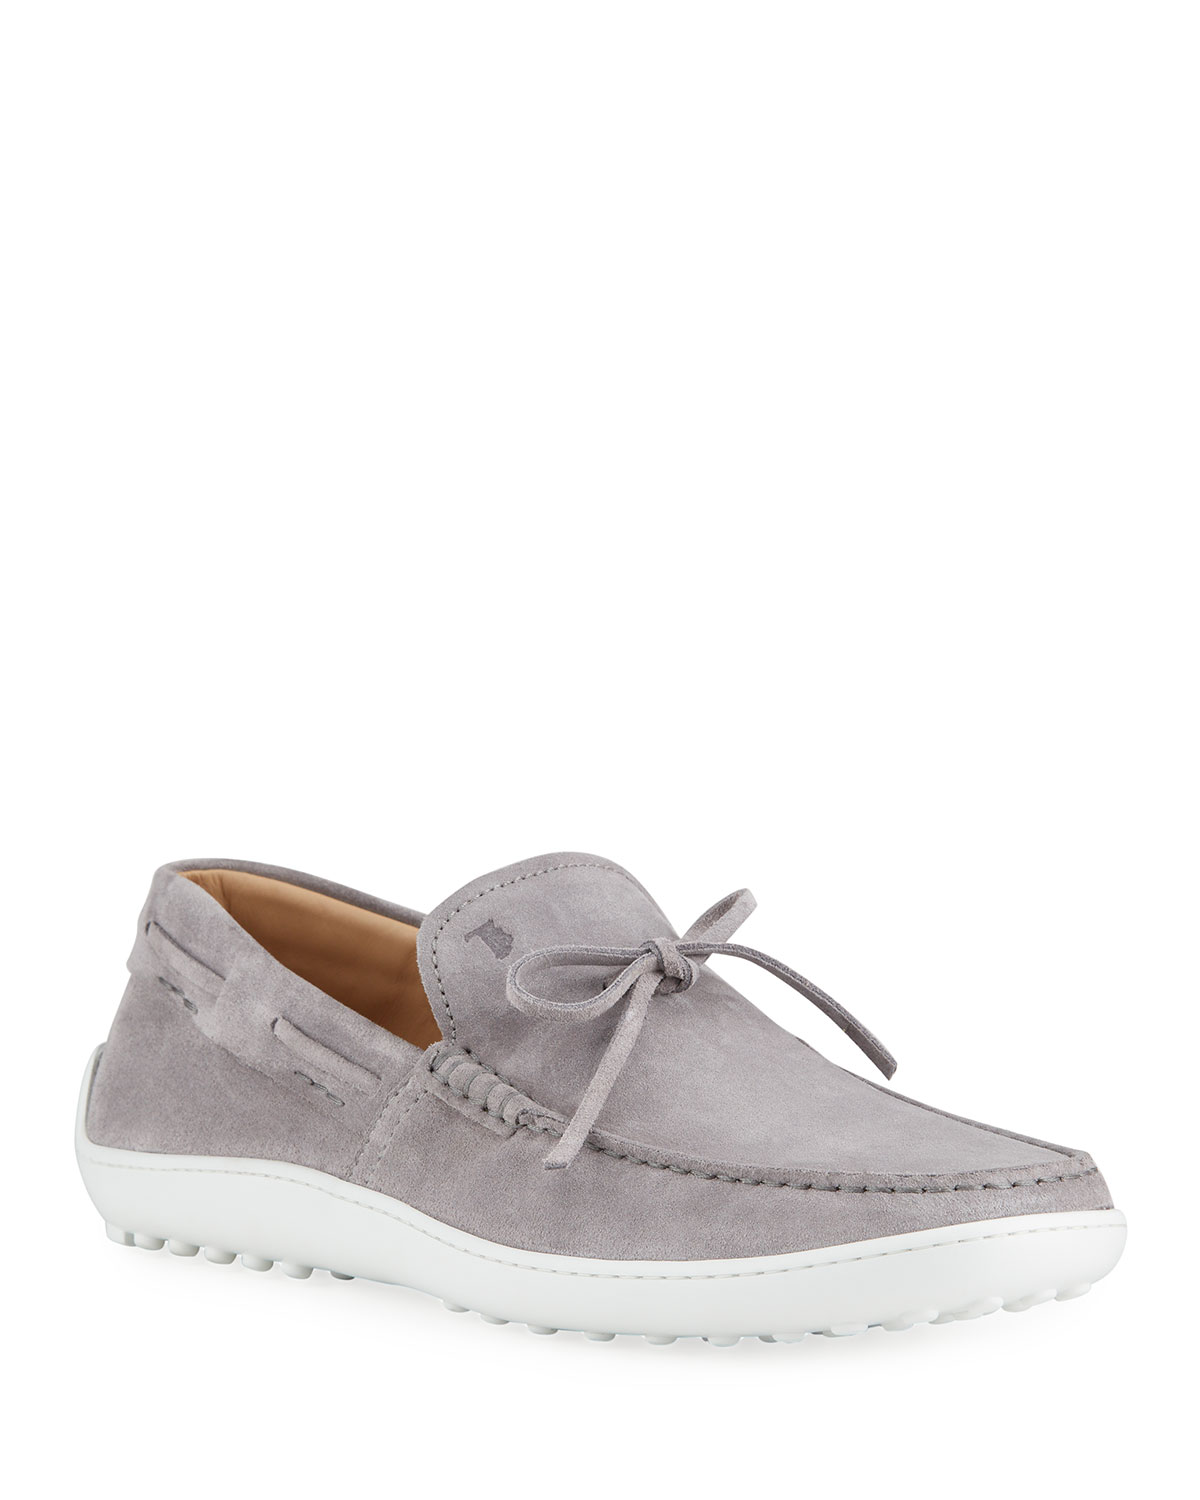 Tod's MEN'S LACCETTO SUEDE BOAT SHOES, GREY